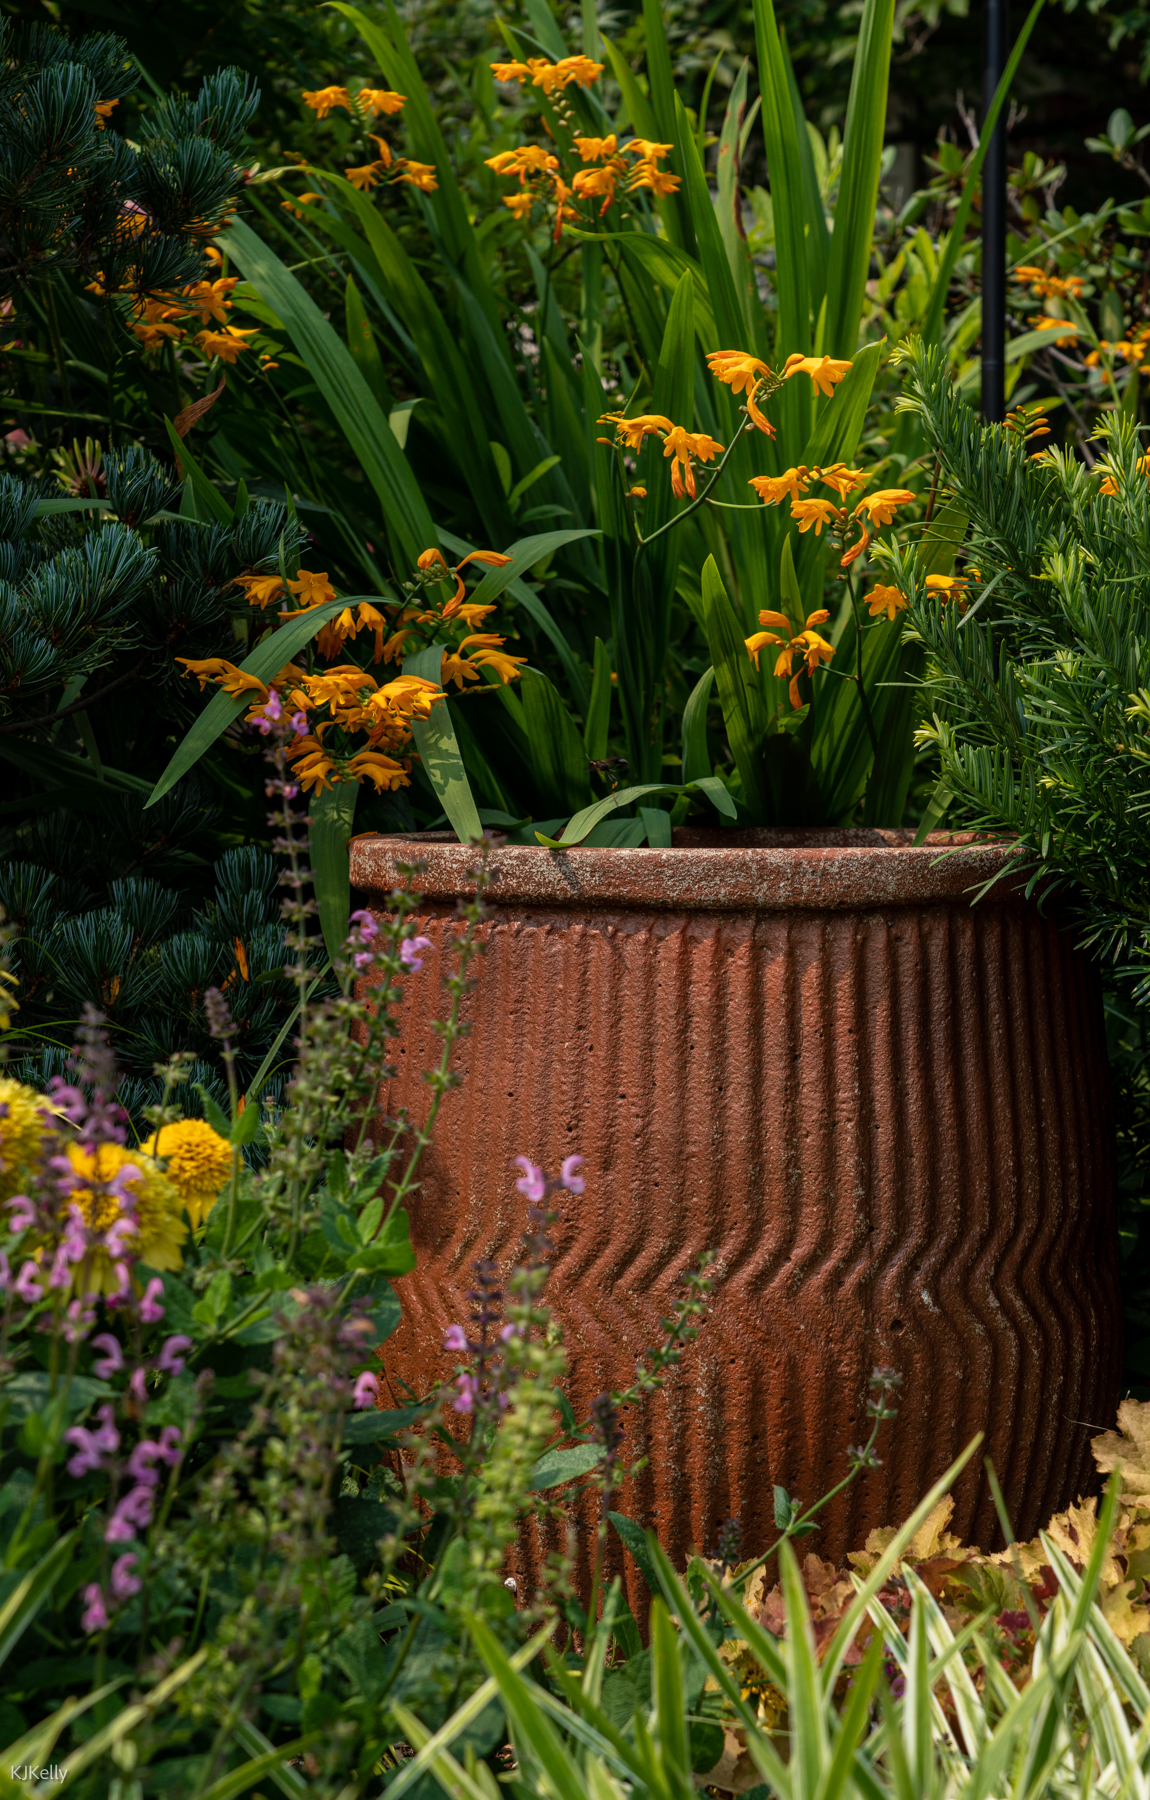 Large crimson container surrounded by perennials